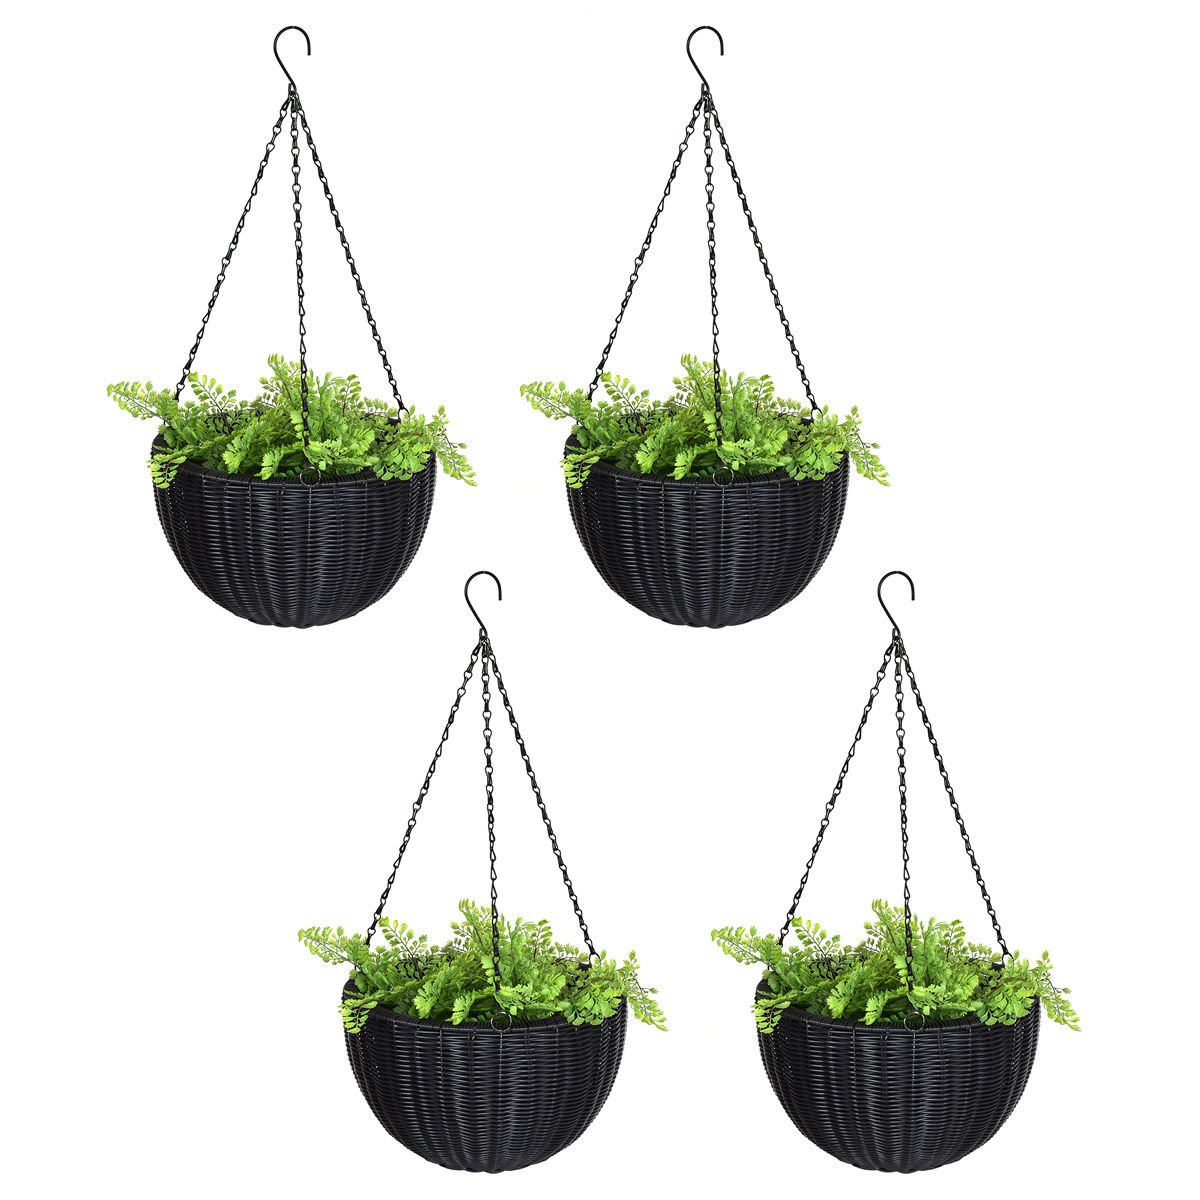 4 PCS 13.8'' Round PE Rattan Garden Plant Hanging Planters Decor Pots New by Happybeamy